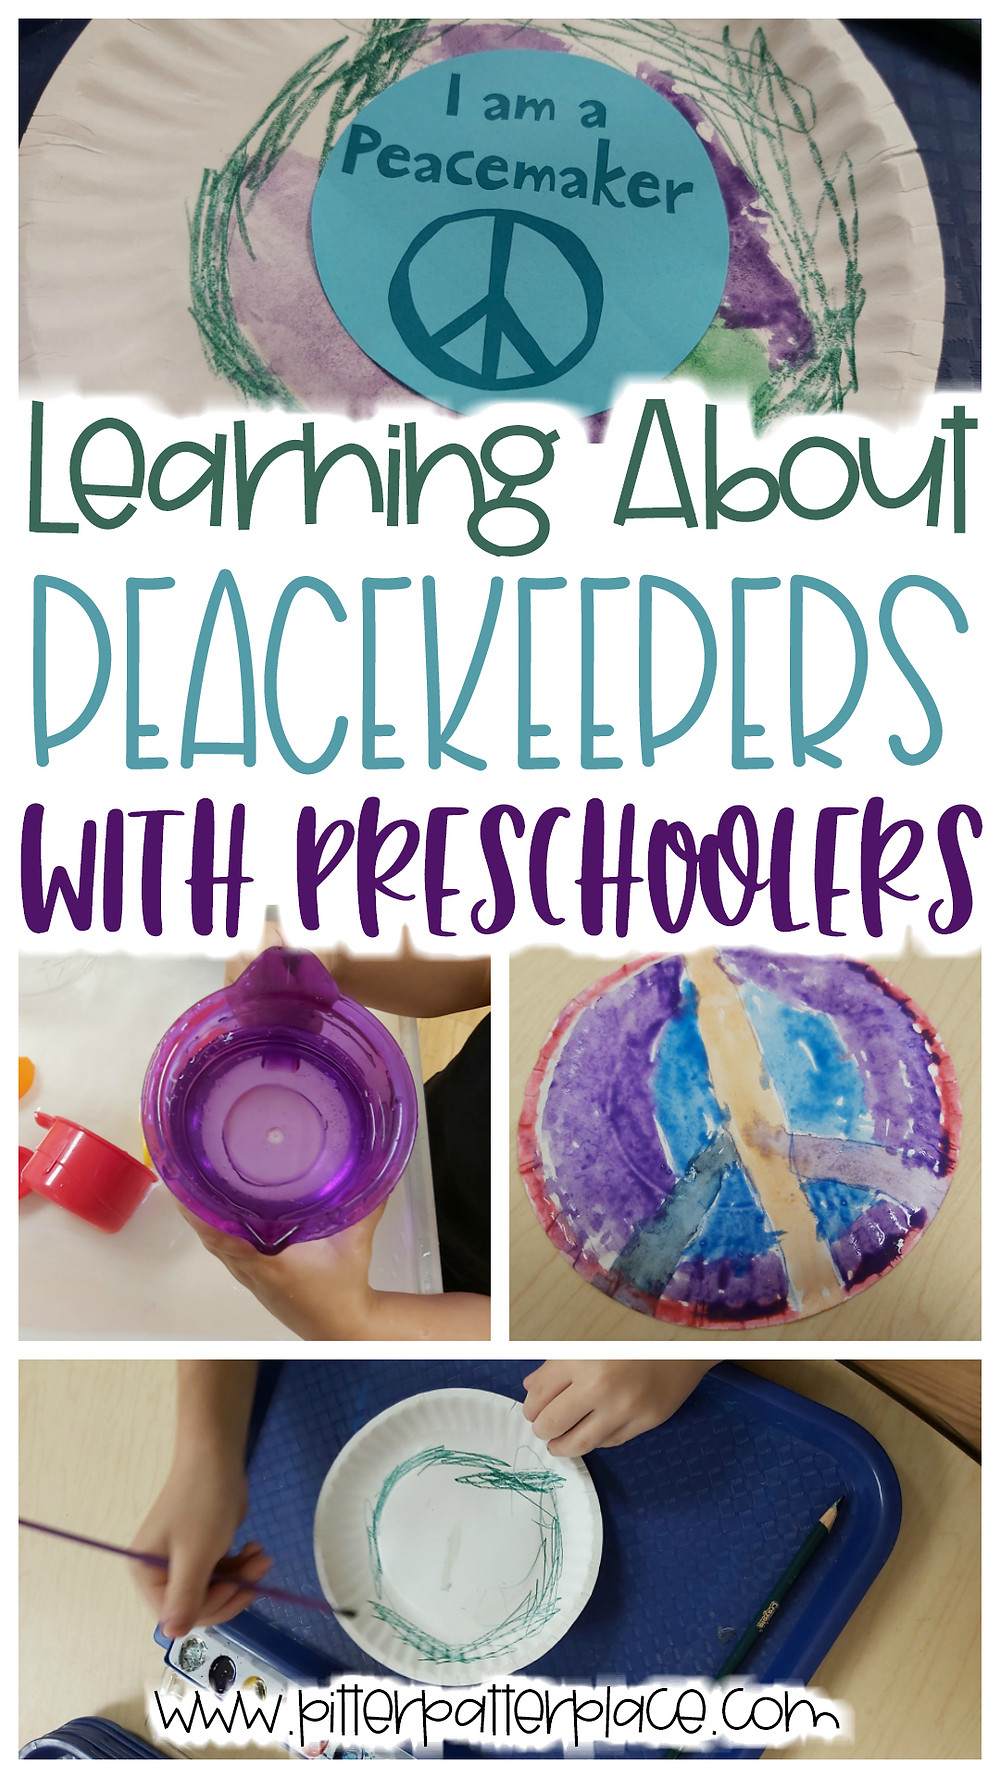 collage of preschool activities with text: Learning About Peacekeepers with Preschoolers